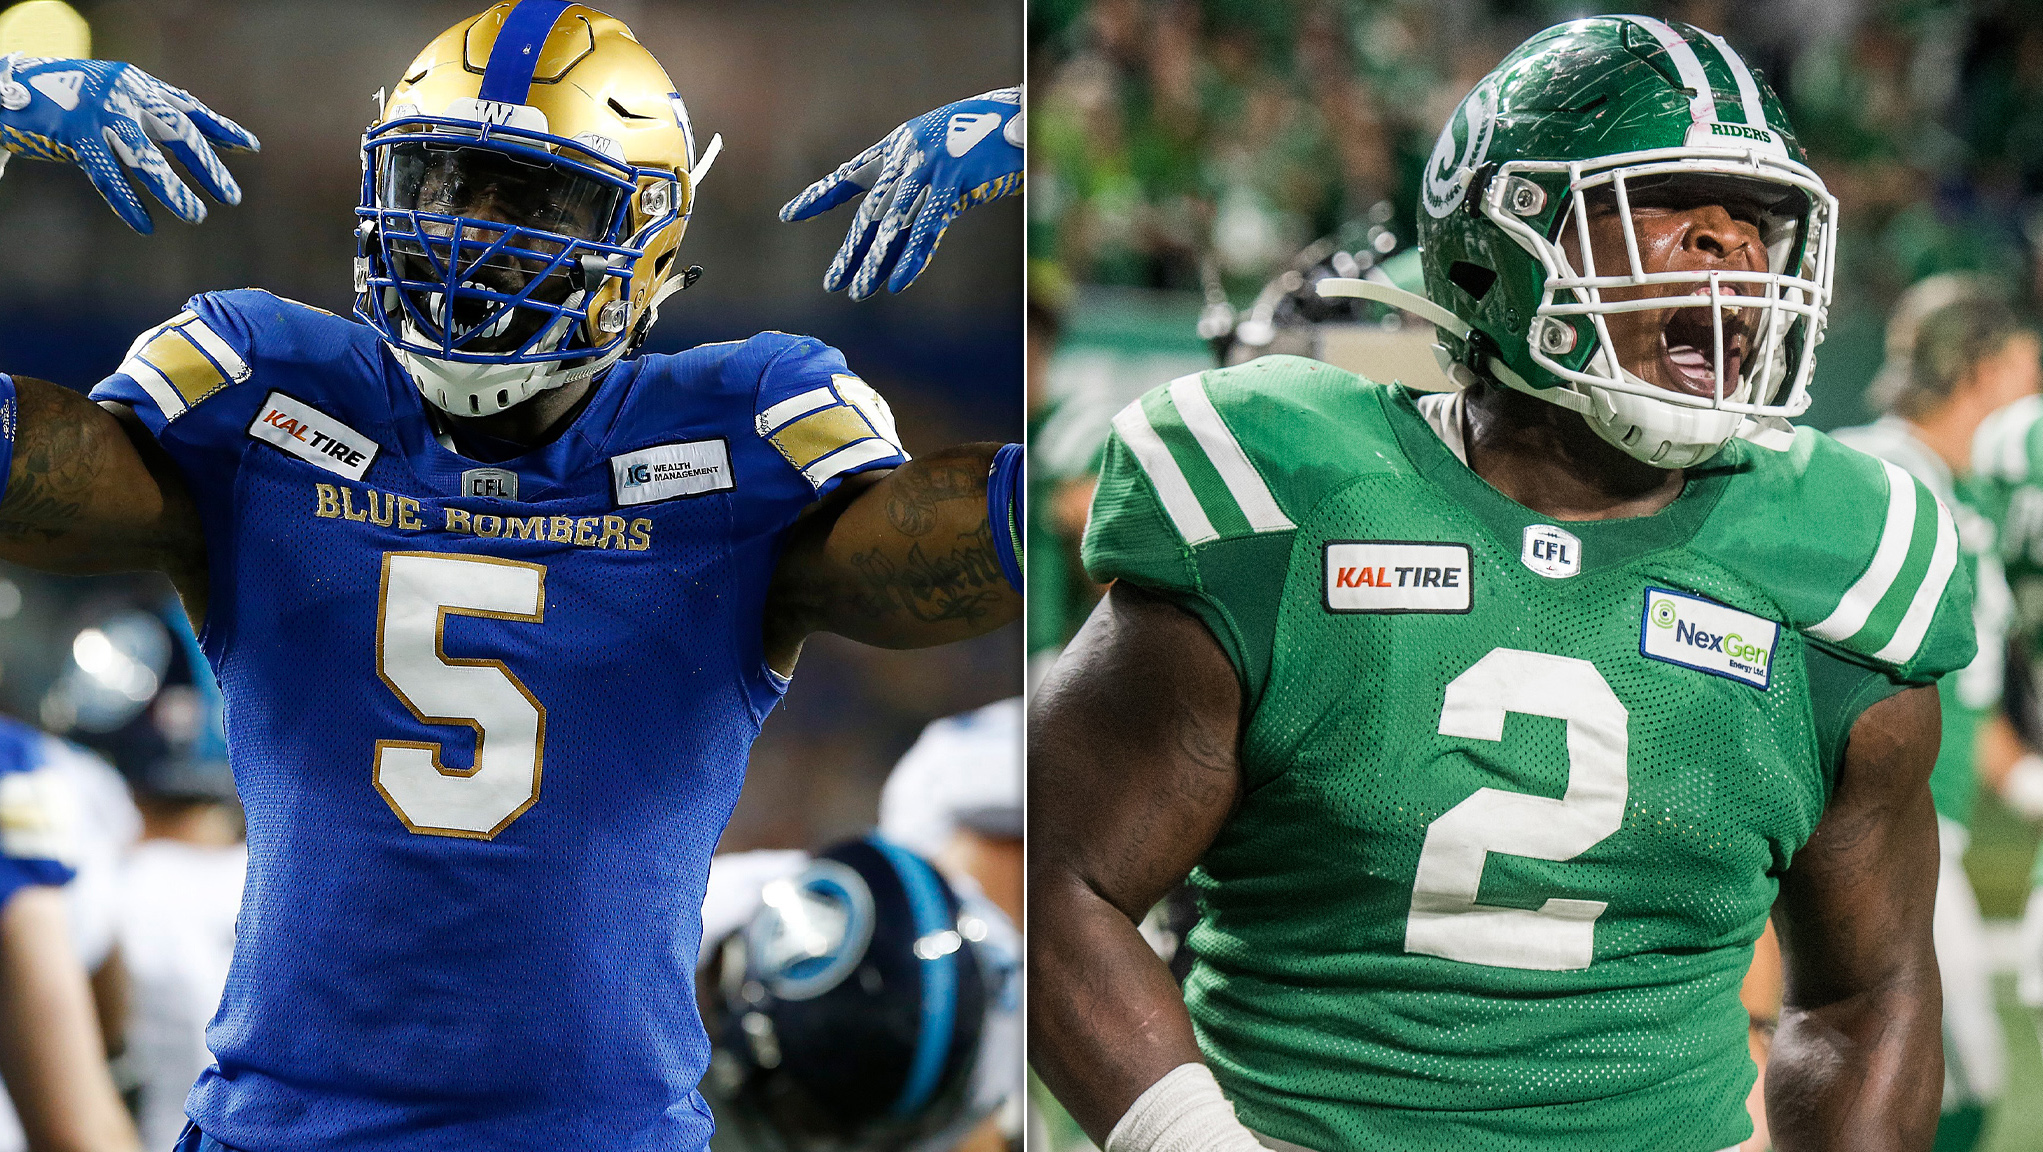 Position of Strength: All-Star talent, veteran savvy available in trenches - CFL.ca